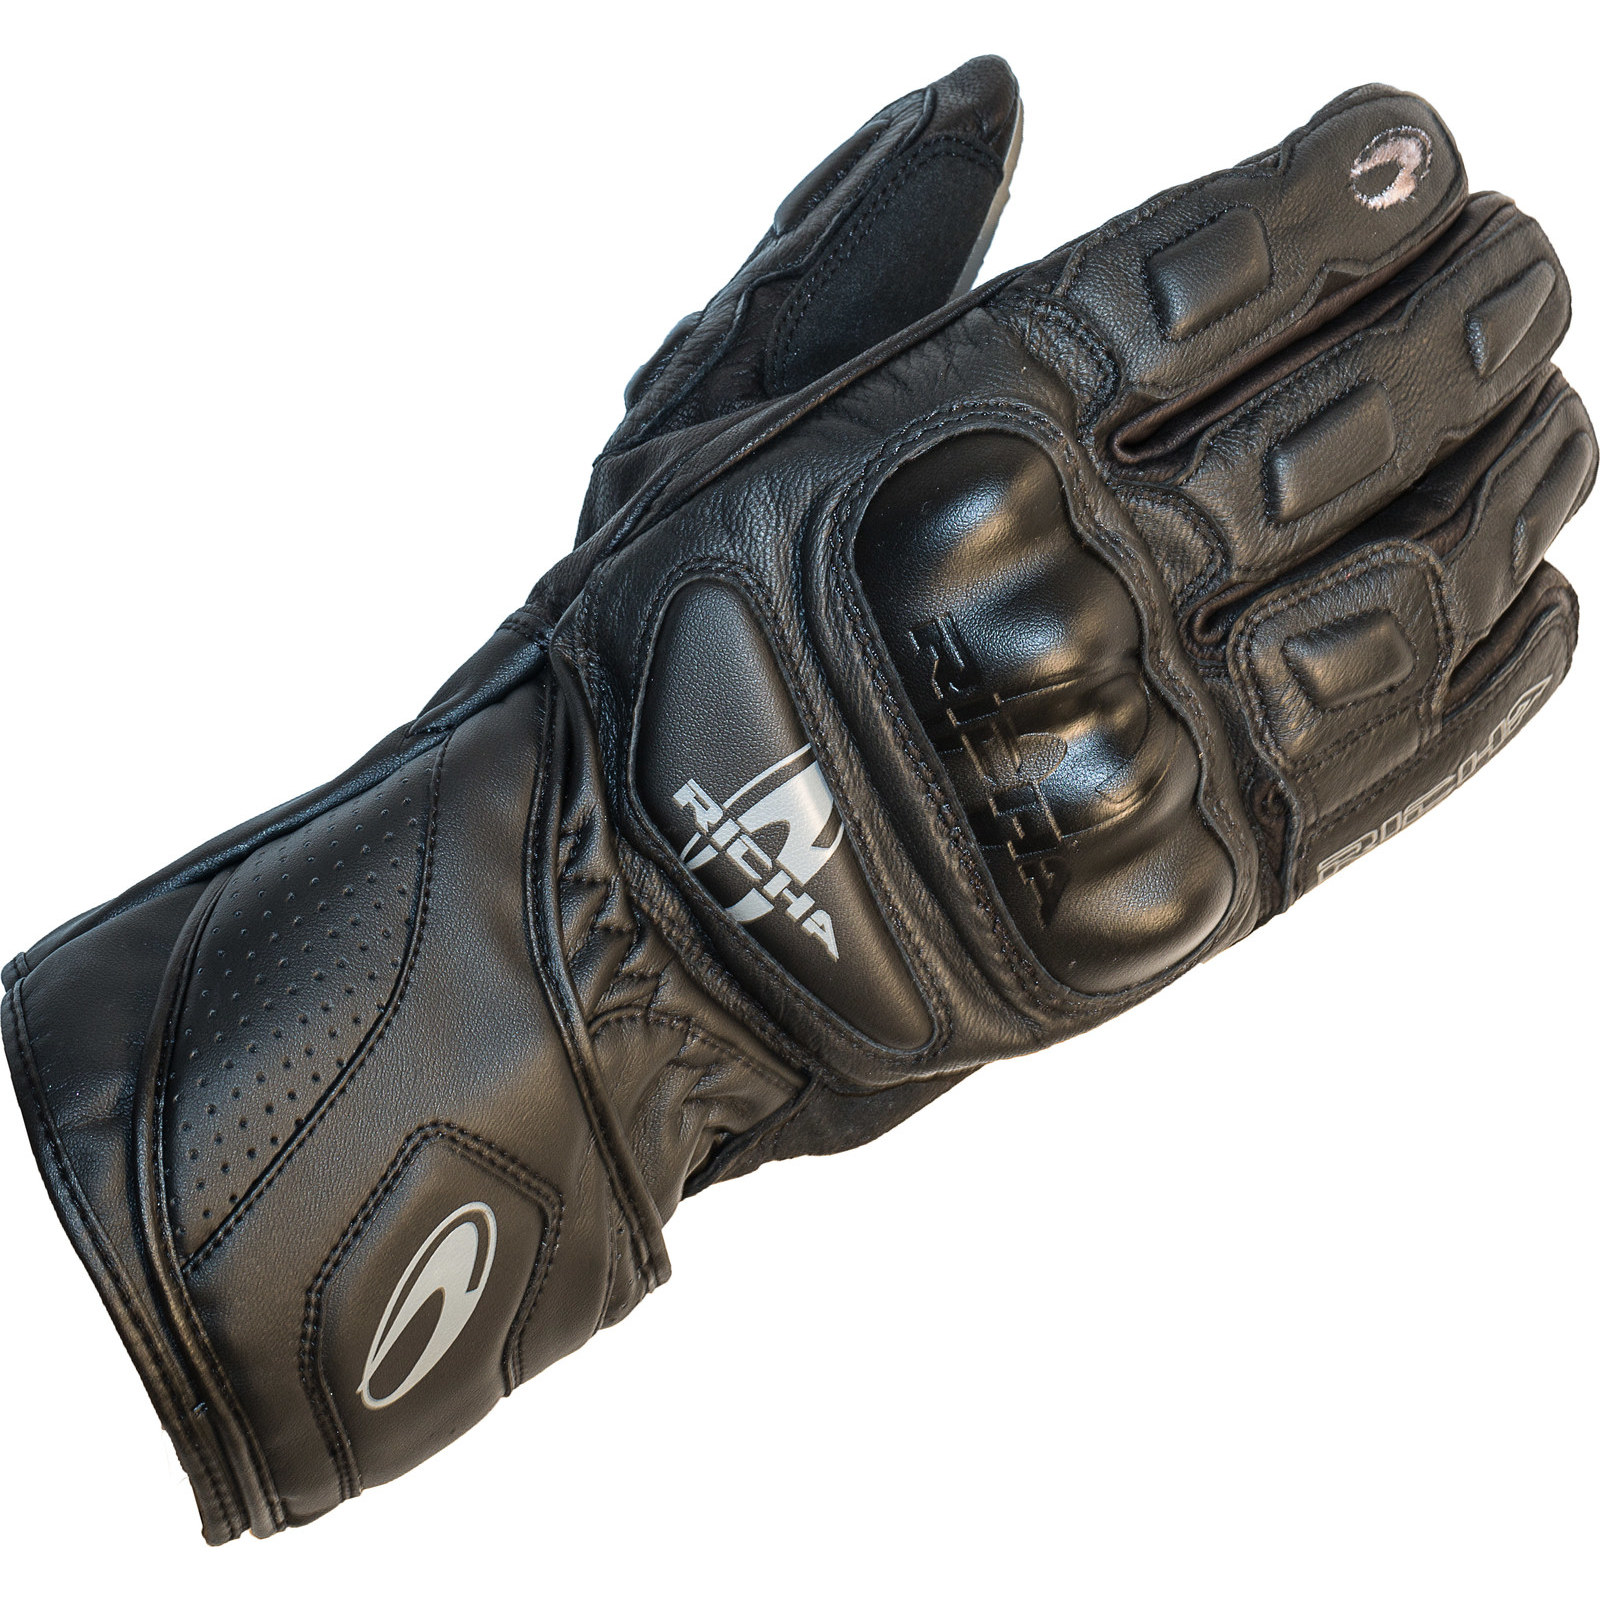 Motorcycle gloves richa - Richa Rs 86 Sports Leather Motorcycle Gloves Motorbike